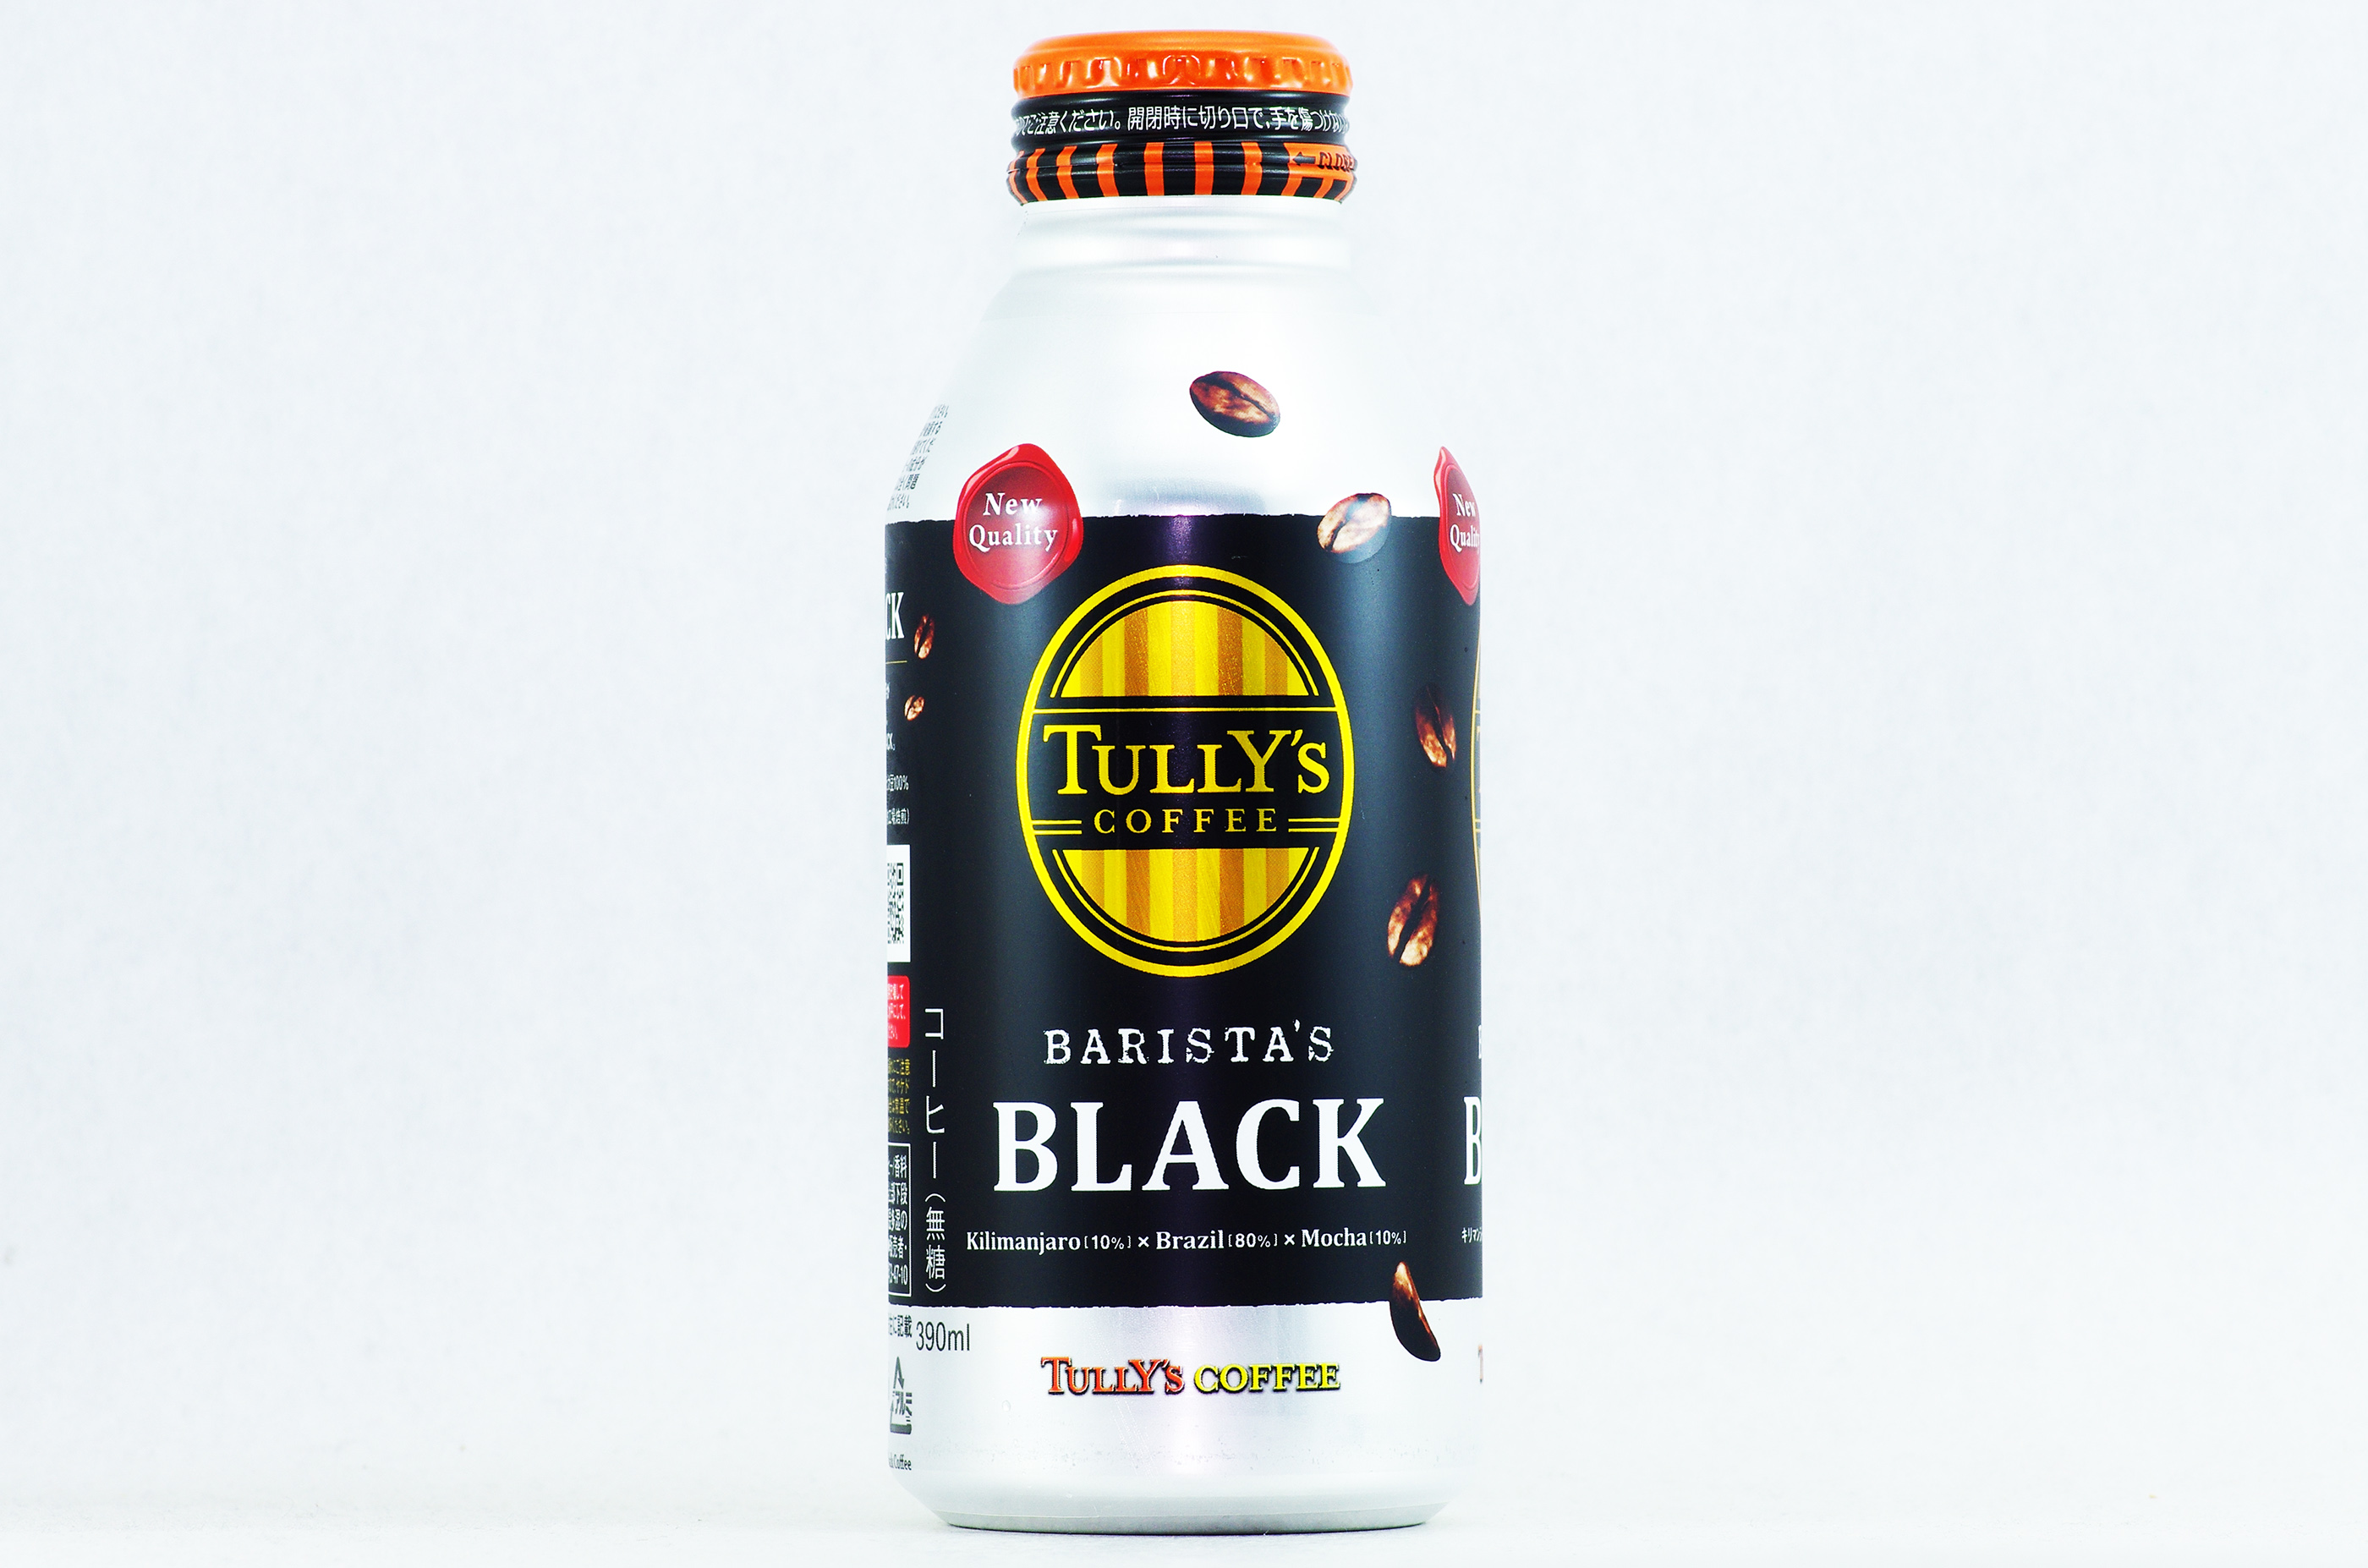 TULLY'S COFFEE BARISTA'S BLACK 2018年10月